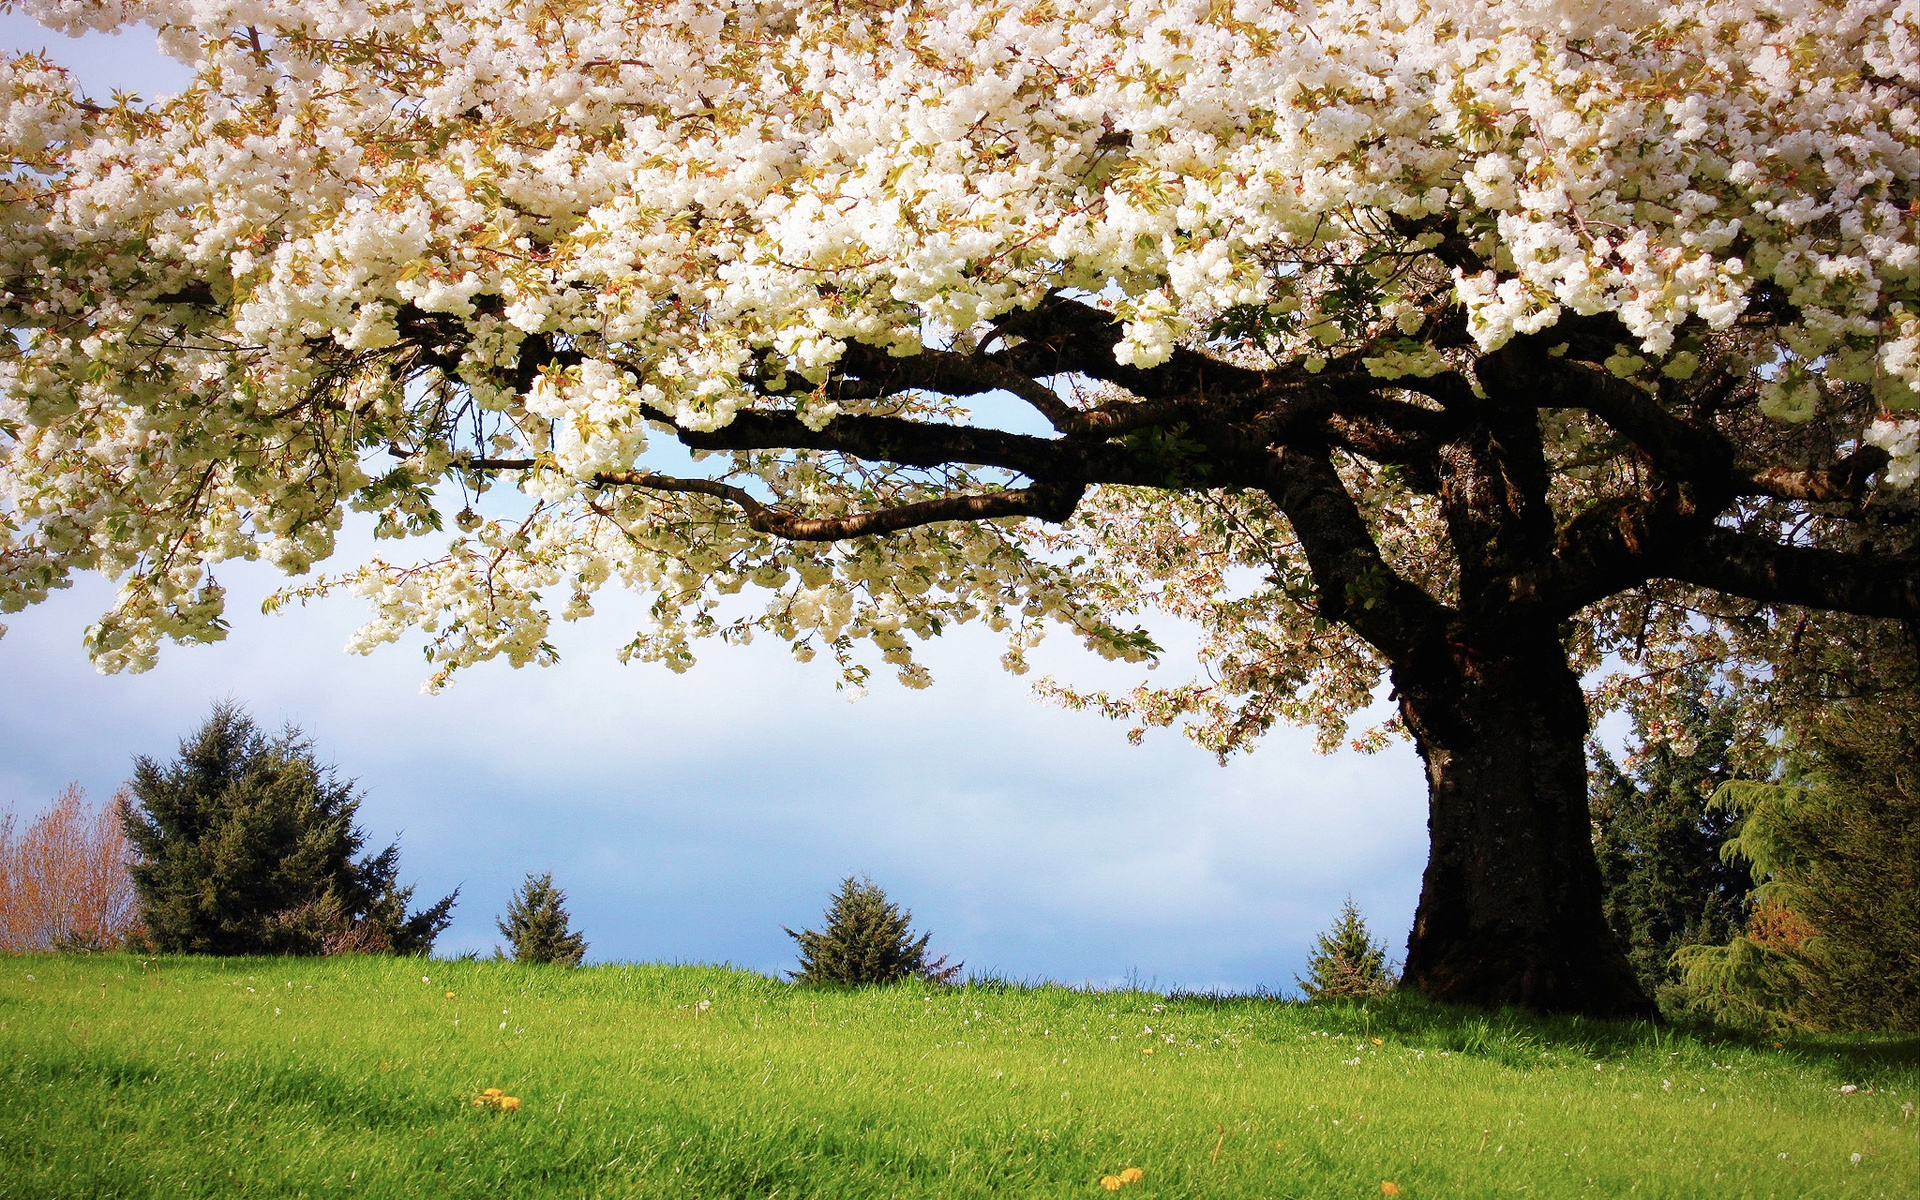 Spring Cherry Pictures - Wallpaper, High Definition, High ...